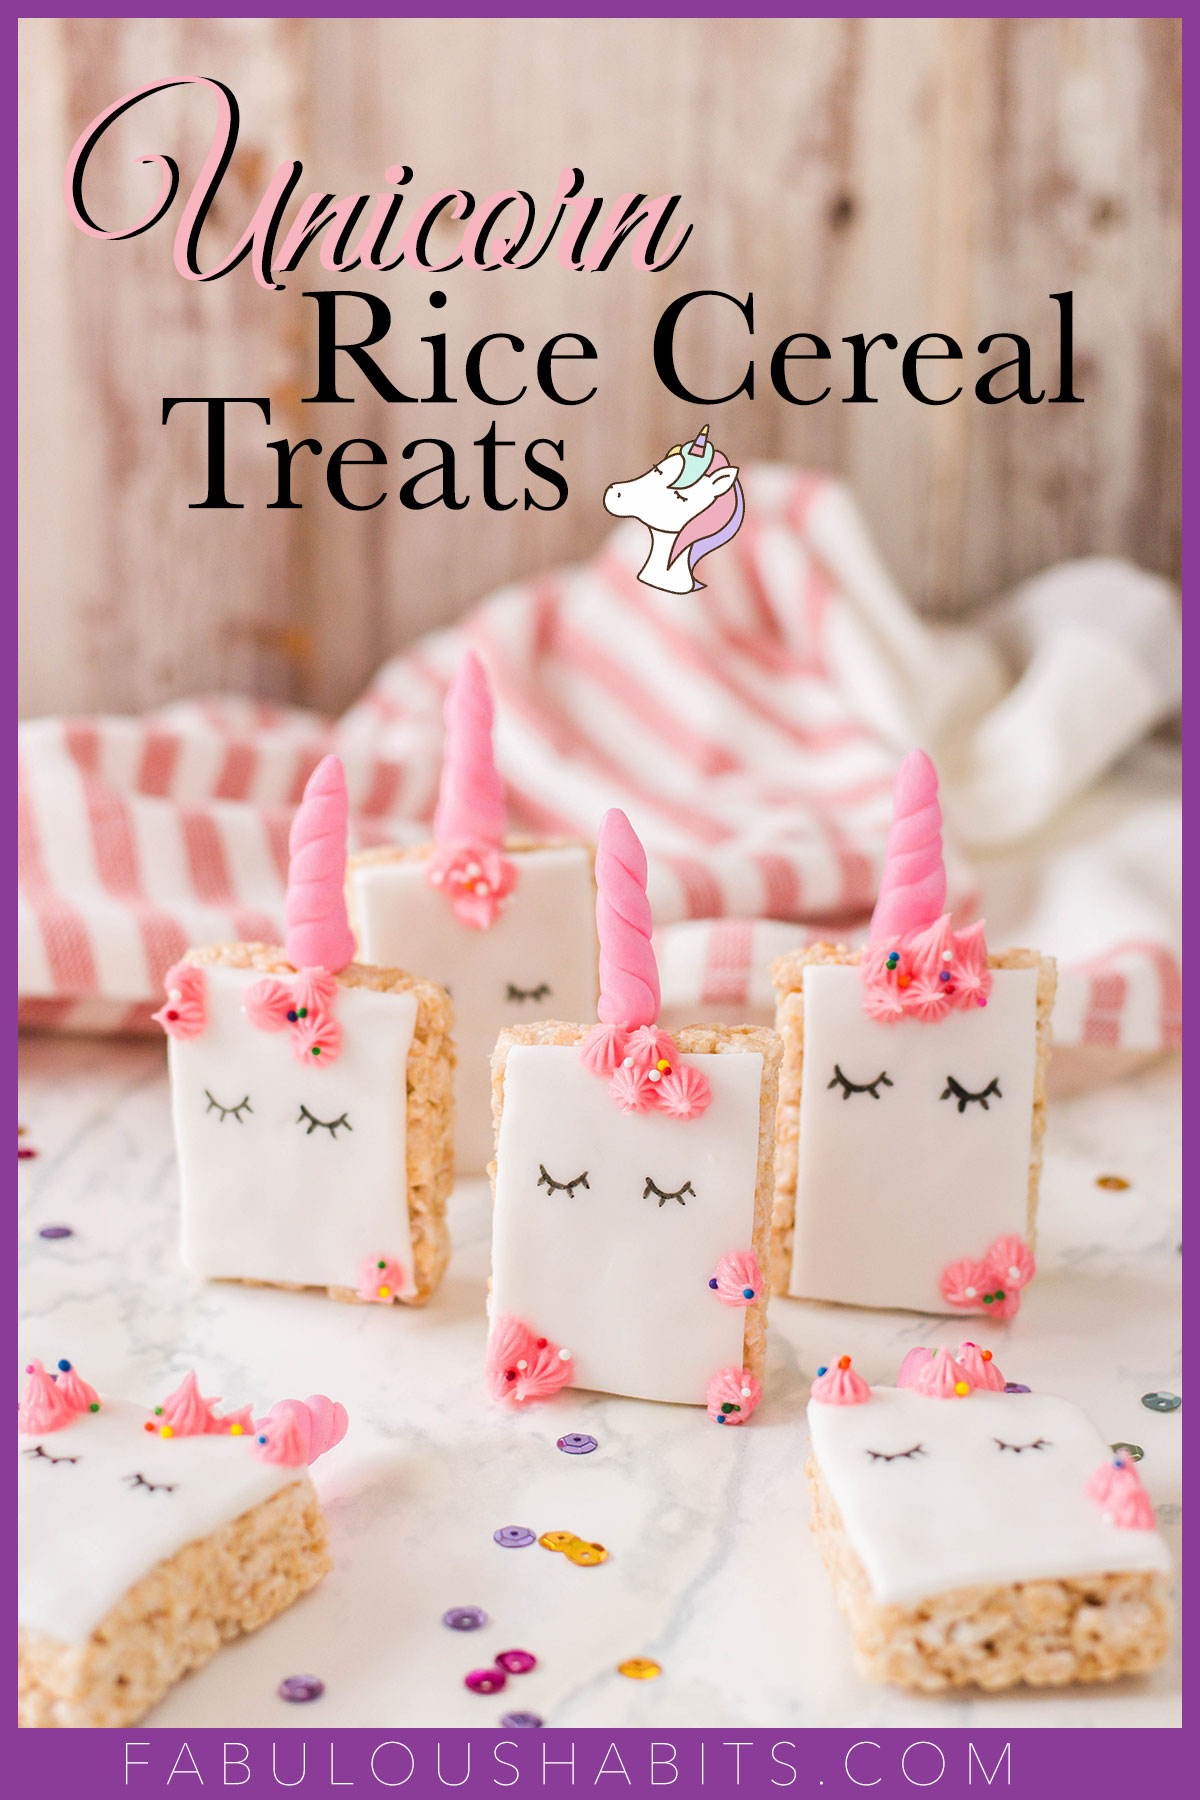 Planning a unicorn bash?! Impress your guests with these ultra cute Unicorn Rice Krispie Treats! #unicorndessert